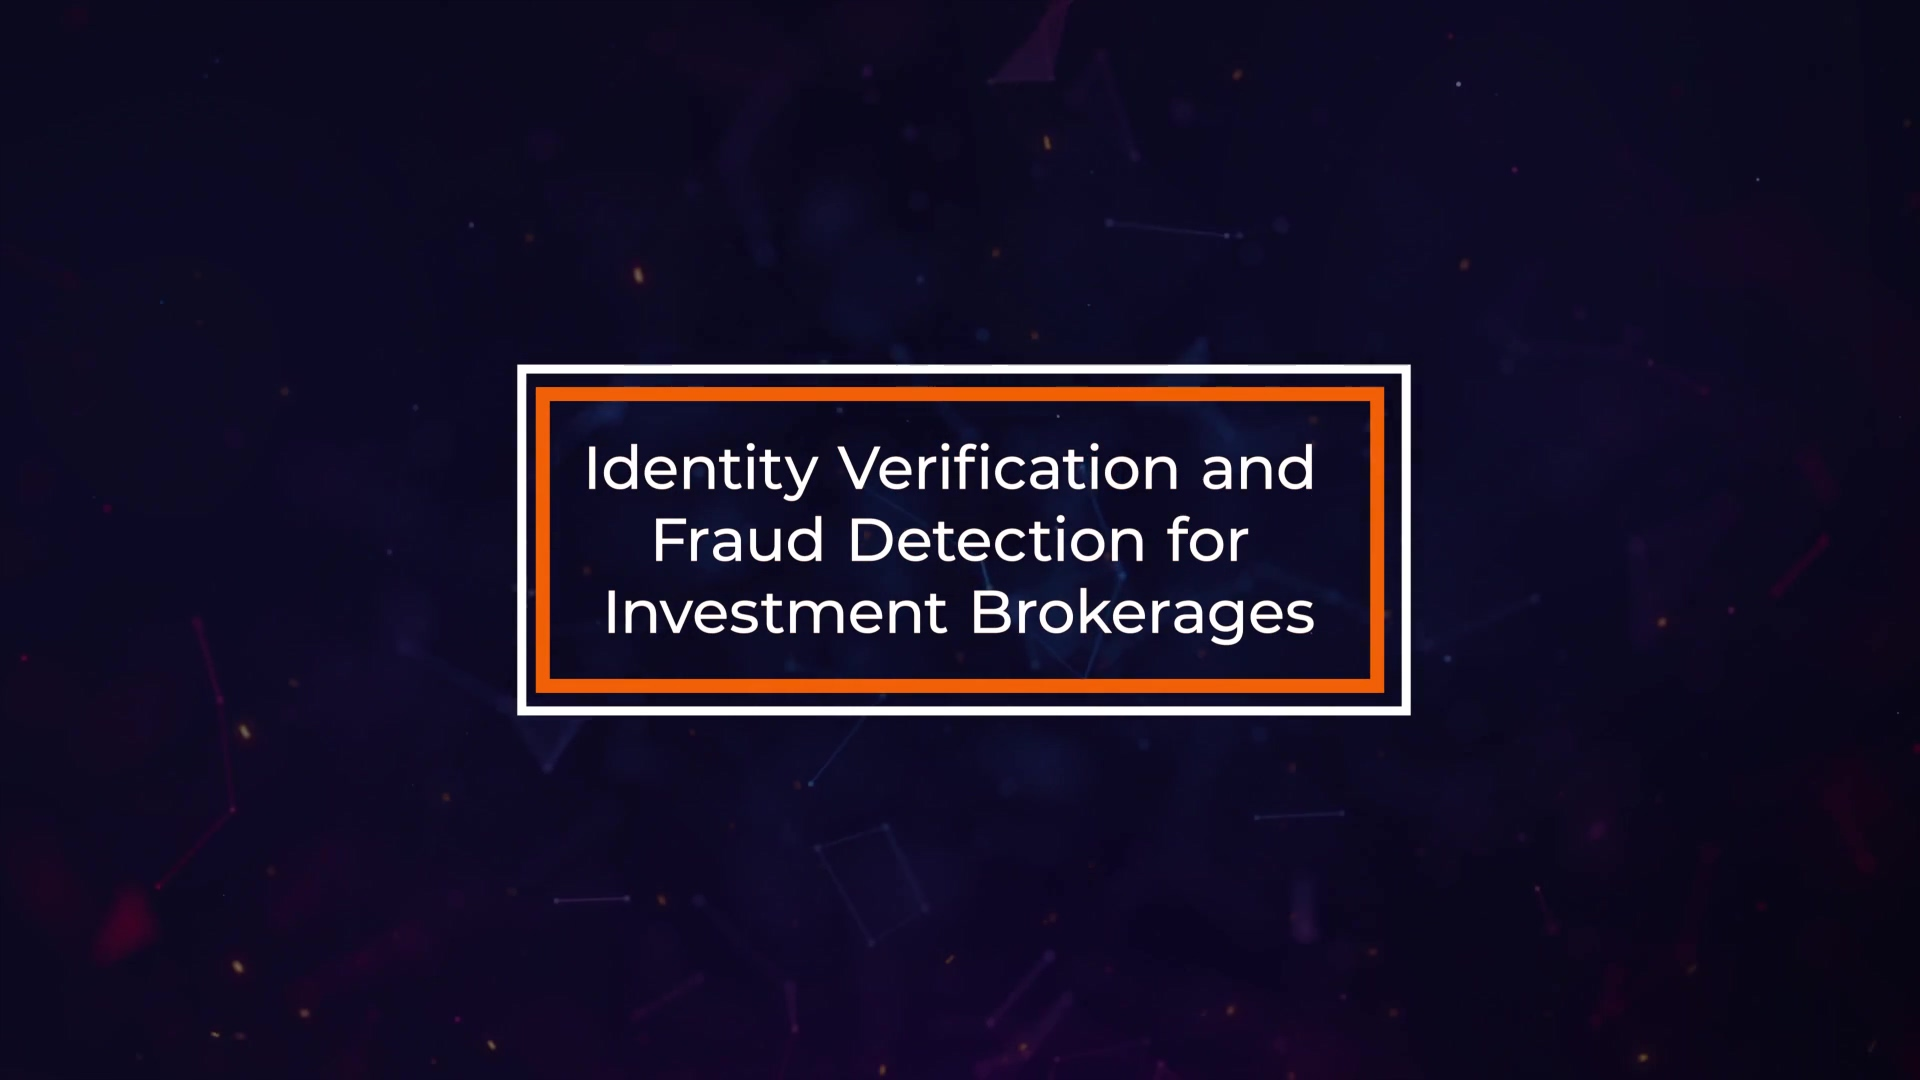 Identity Verification and Fraud Detection for Investment Brokers